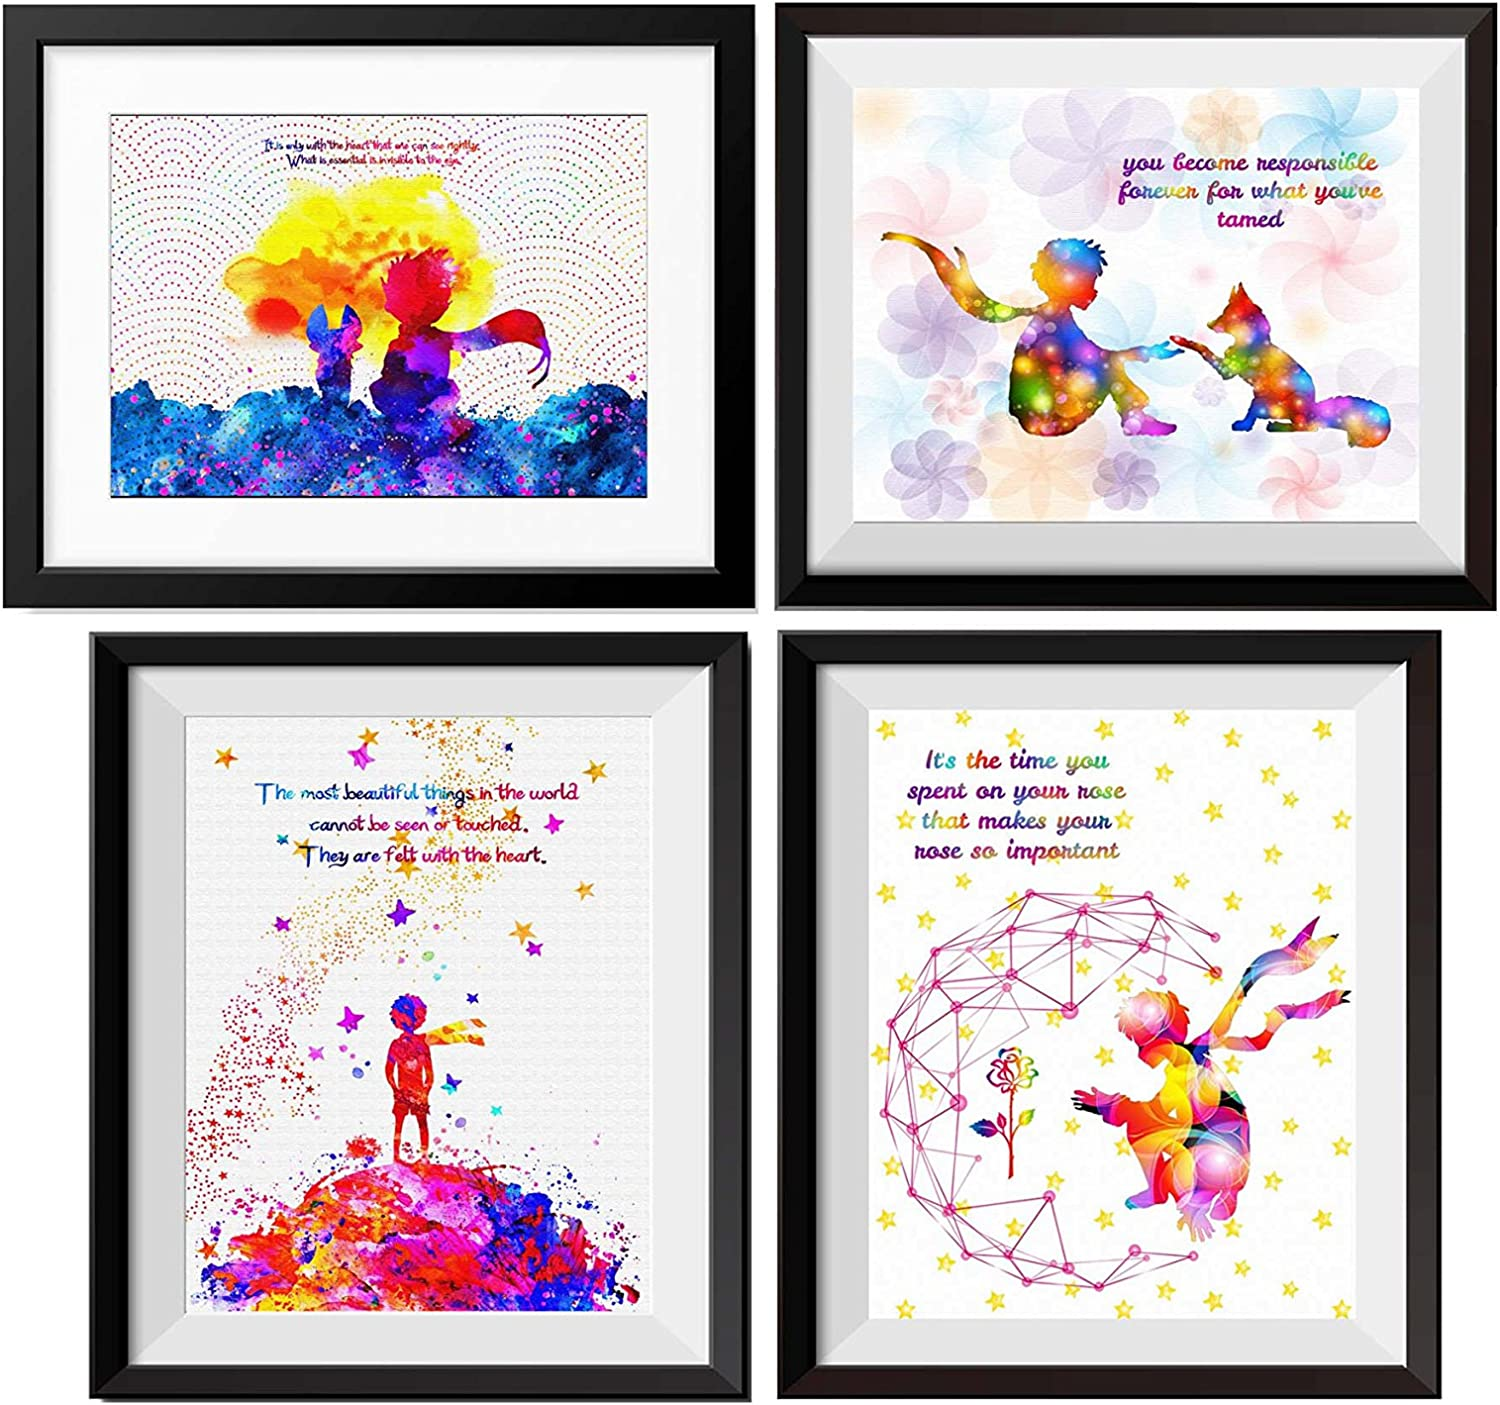 Uhomate 4 pcs Set The Little Prince Fox Le Petit Prince Little Prince Canvas Wall Art Baby Gift Inspirational Quotes Wall Decor for Living Room Decorations for Bedroom M028 (8X10)